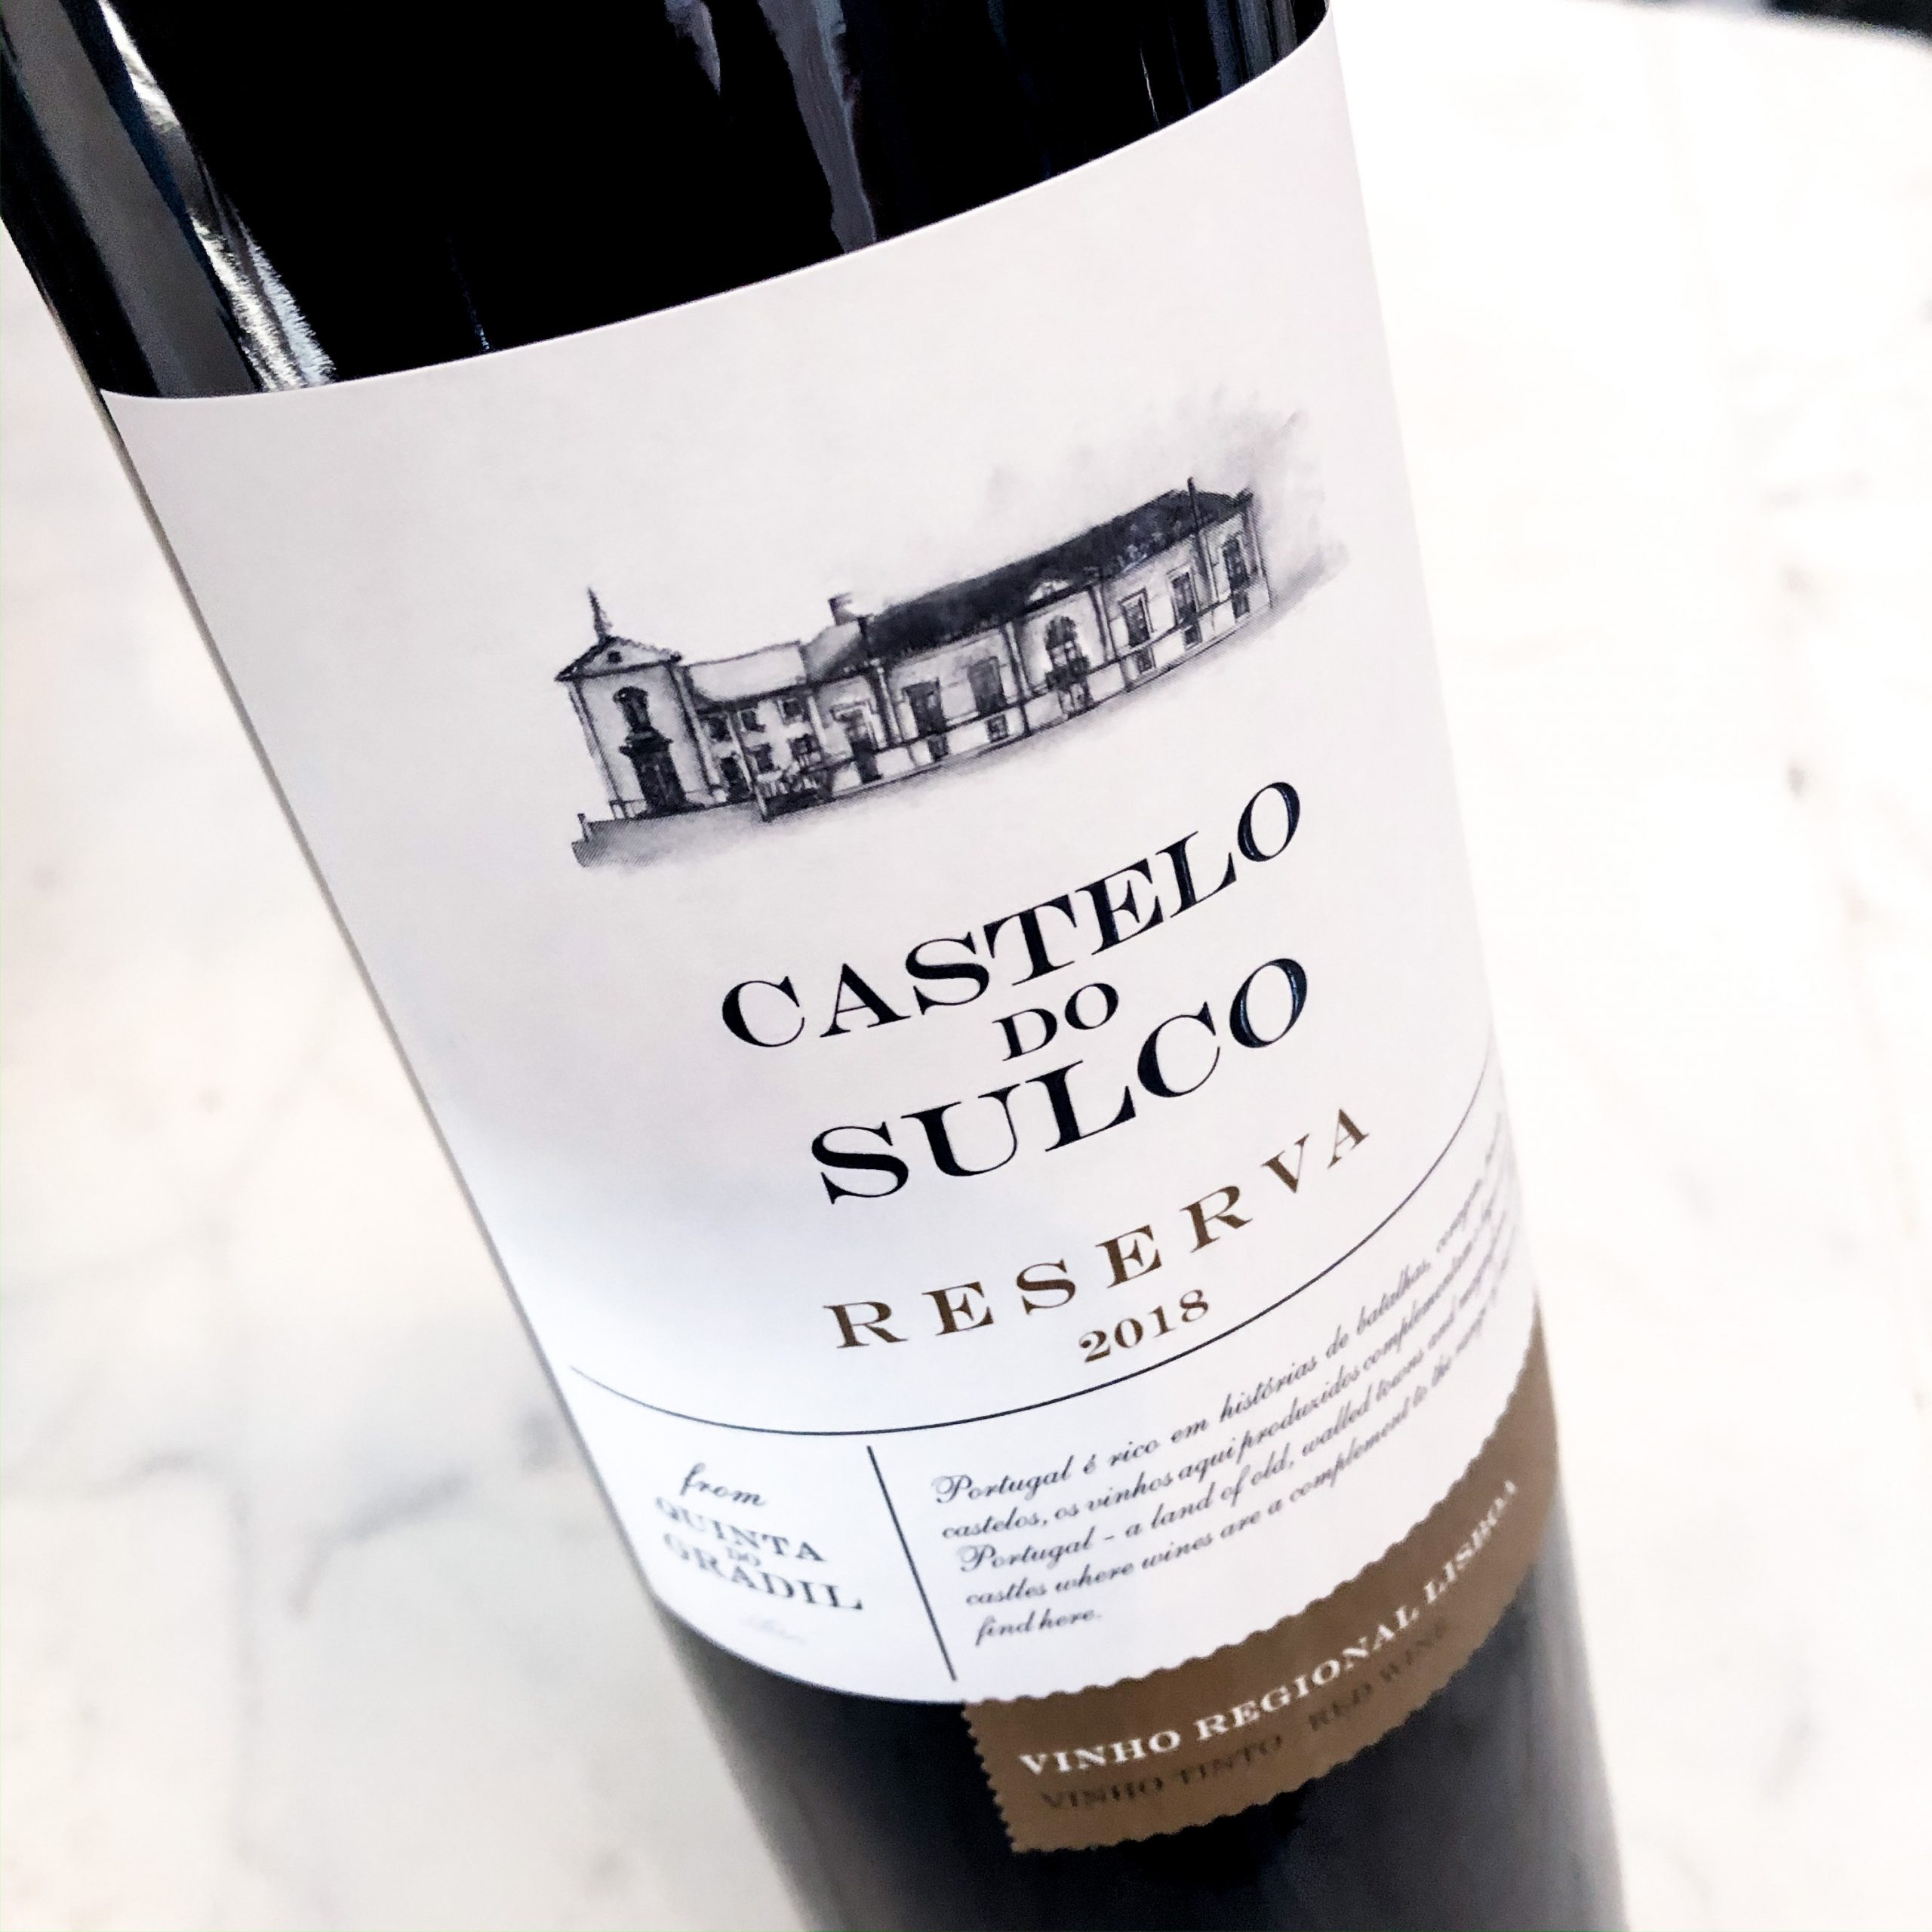 Castelo do Sulco Reserva Red 2018